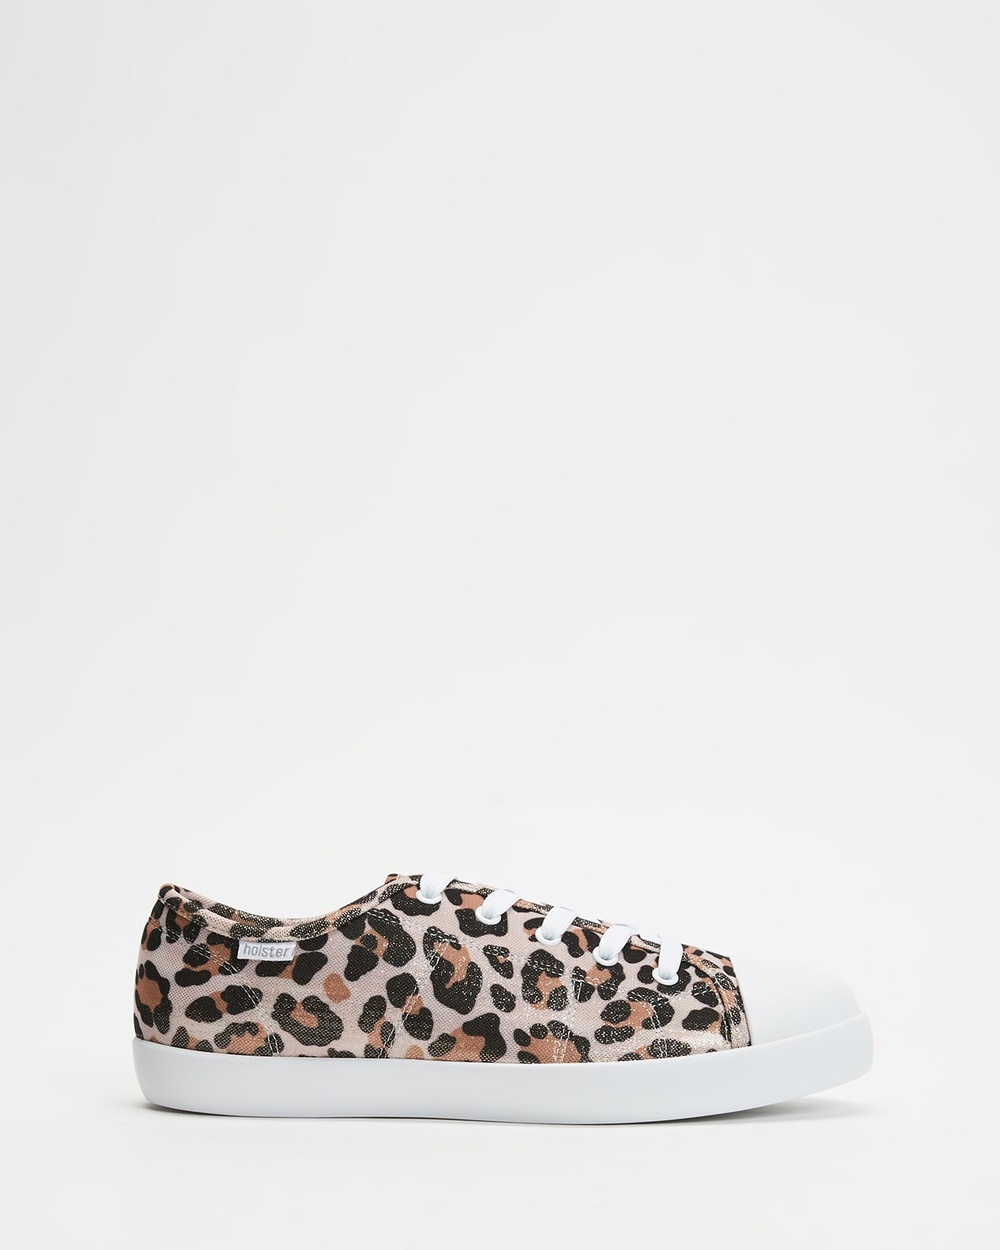 Holster Piper Sneakers Leopard